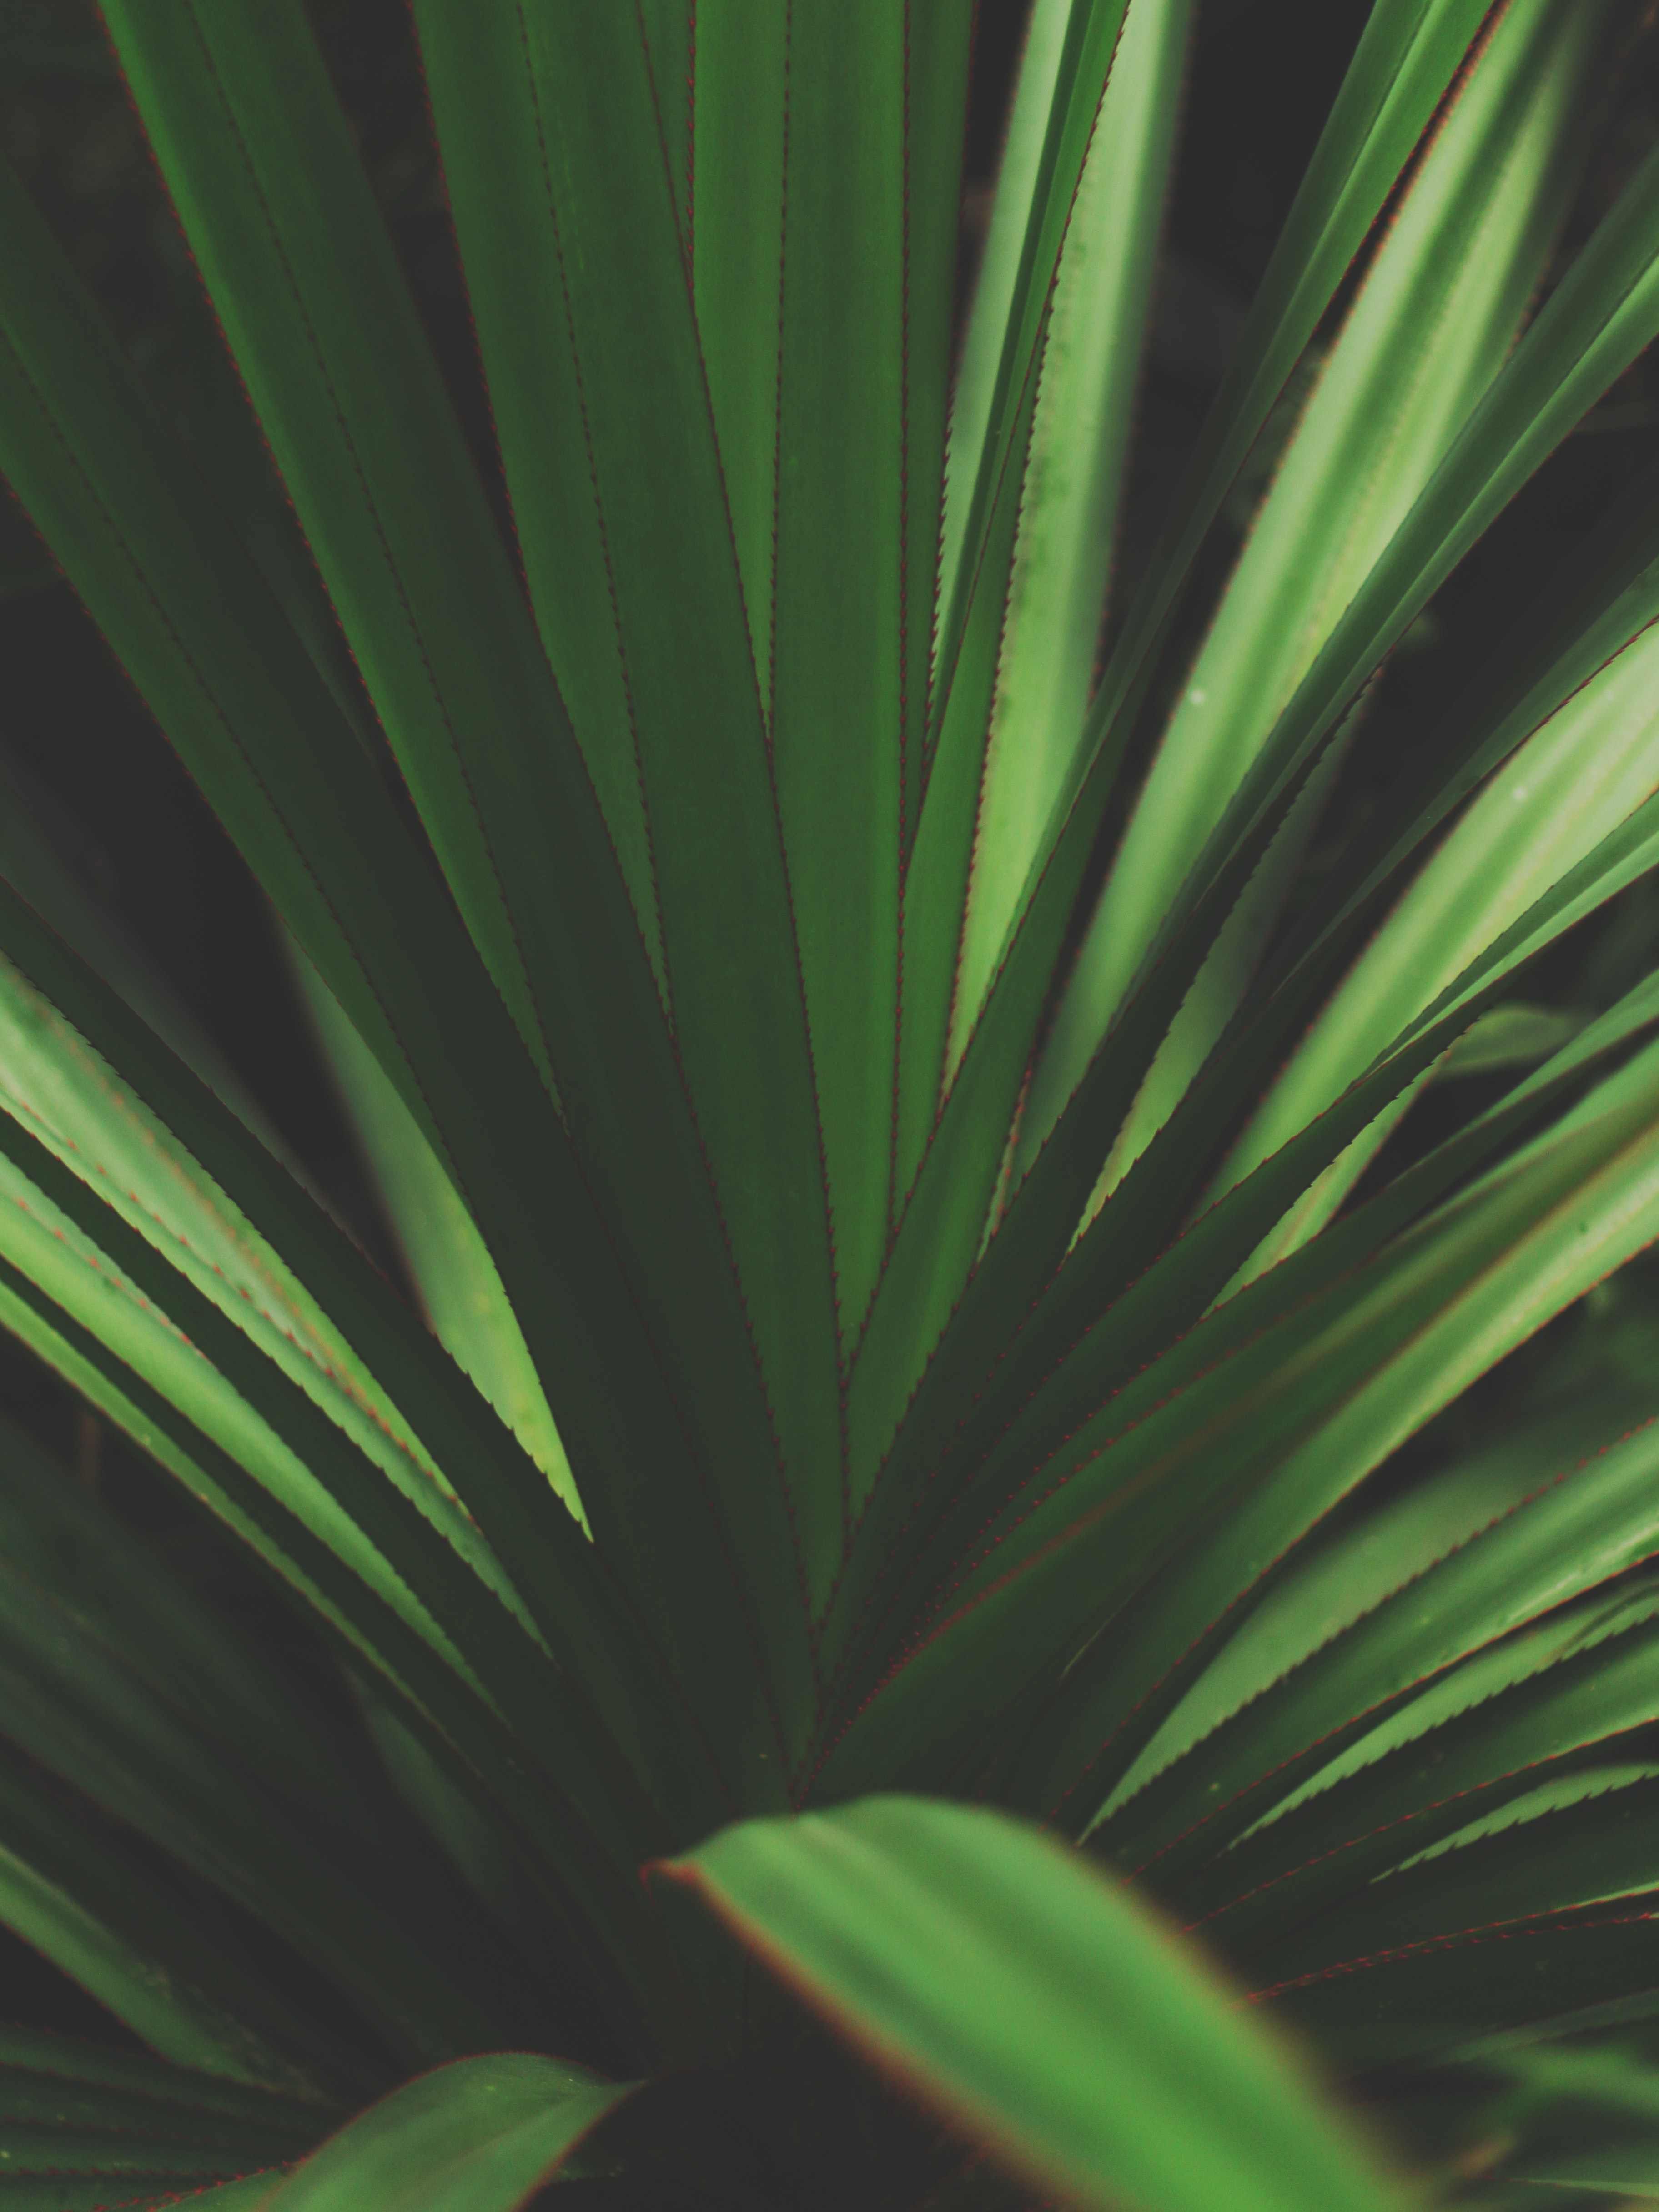 Closeup photo of green plant